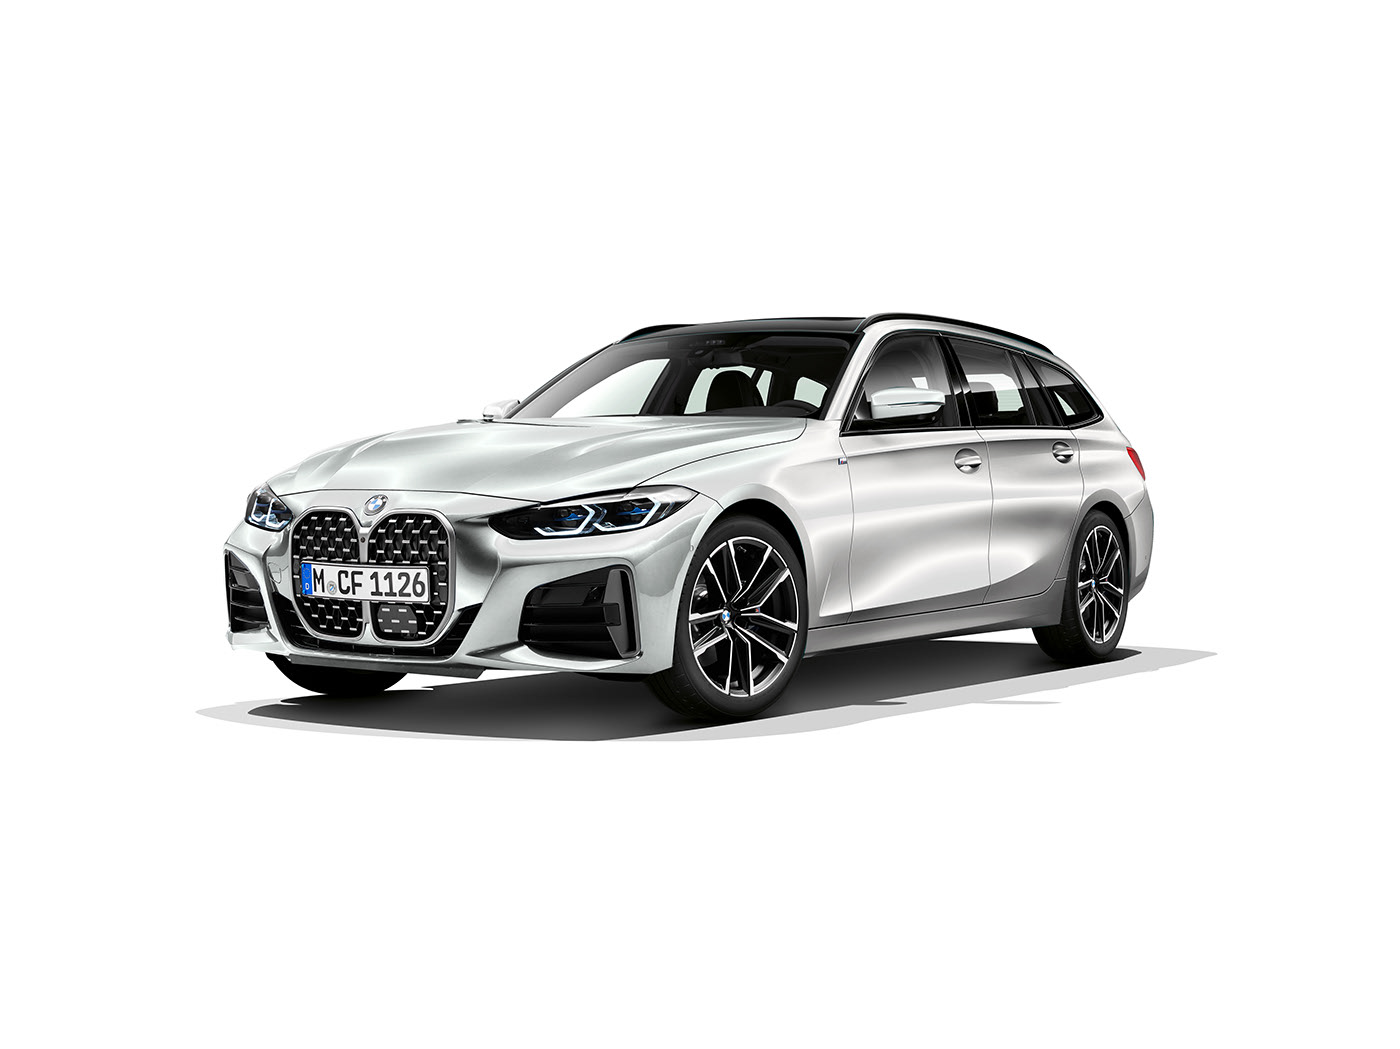 2020 - [BMW] M3/M4 - Page 19 2023-bmw-m3-touring-rendered-with-giant-grille-looks-ugly-147383_1